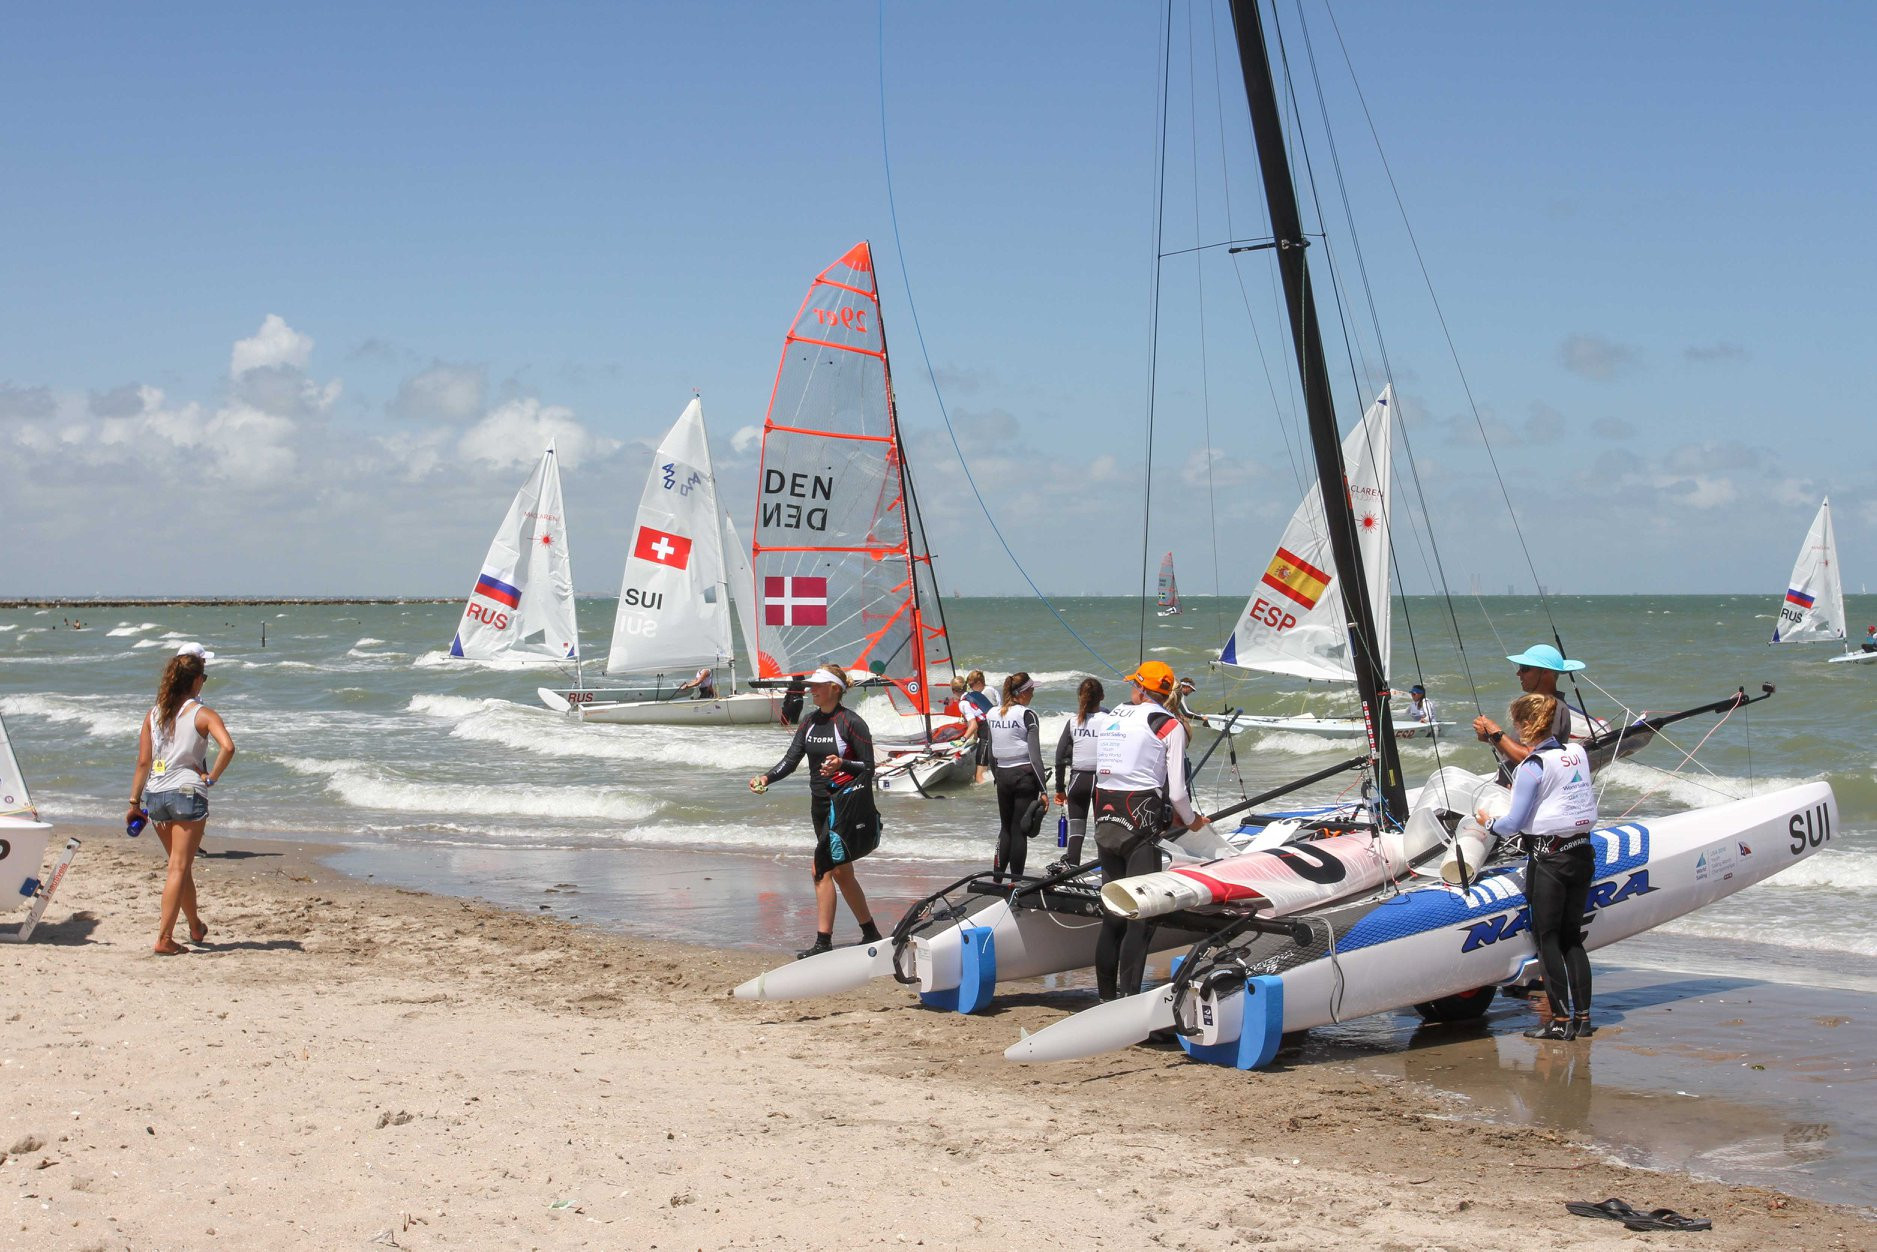 Competition will take place over five days in the United States ©World Sailing